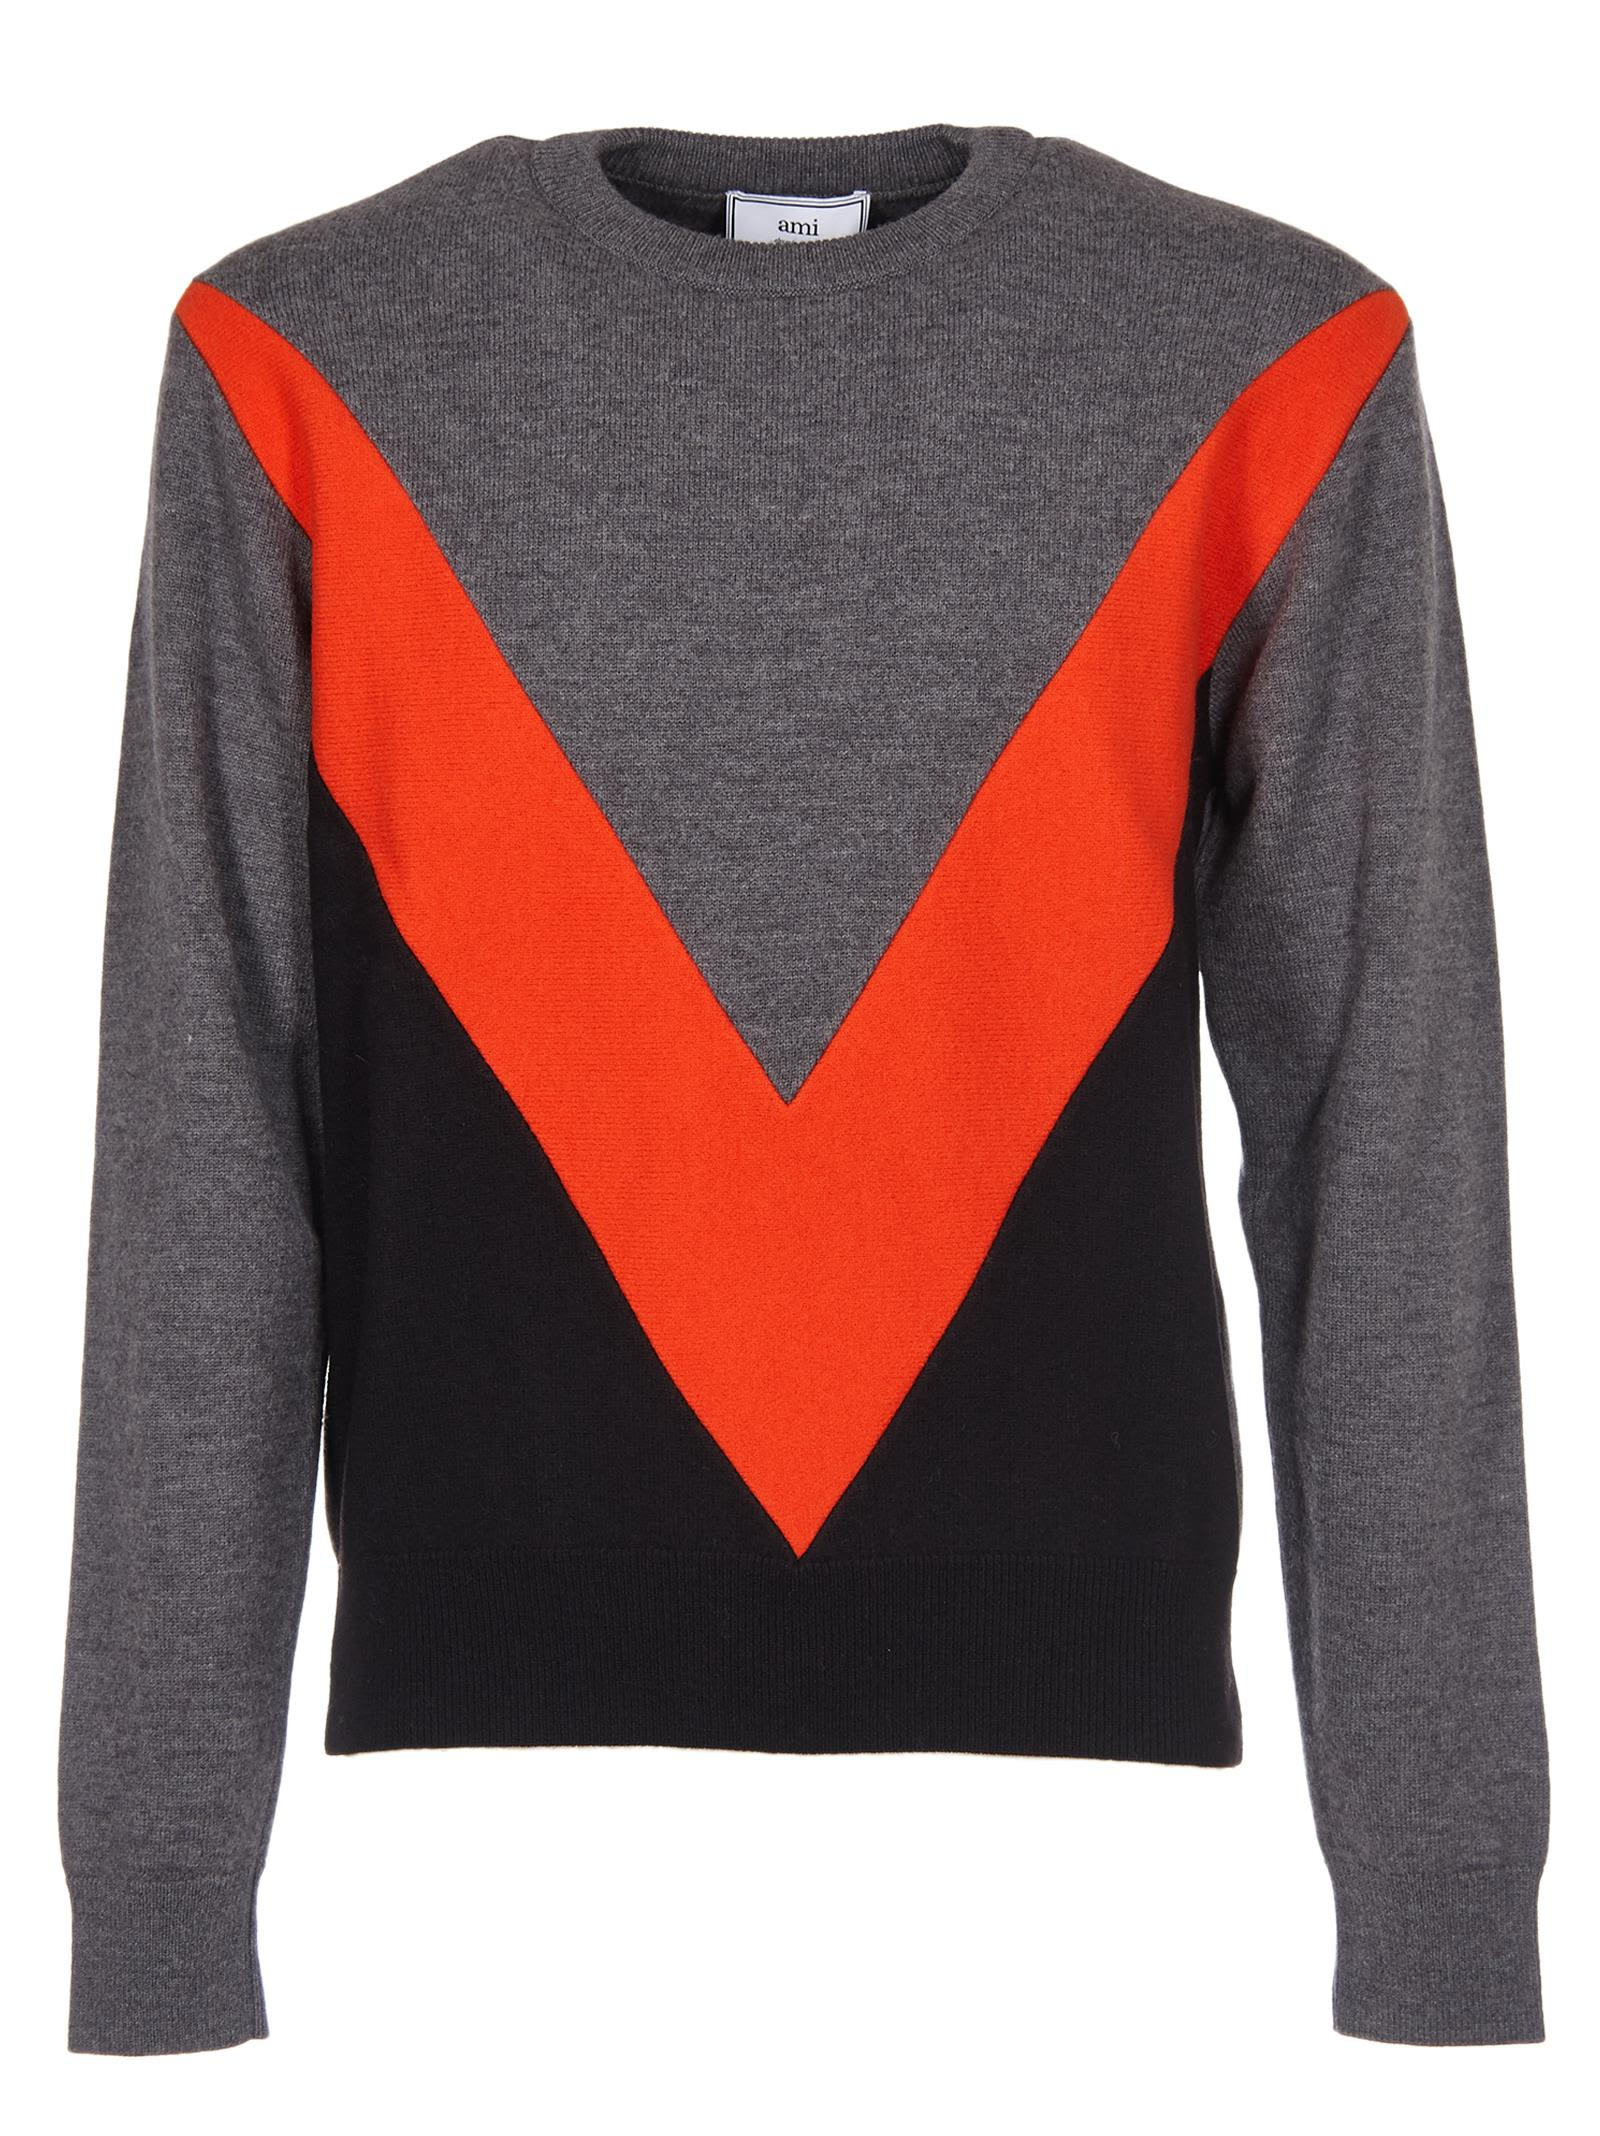 Ami Alexandre Mattiussi Color-block Sweater